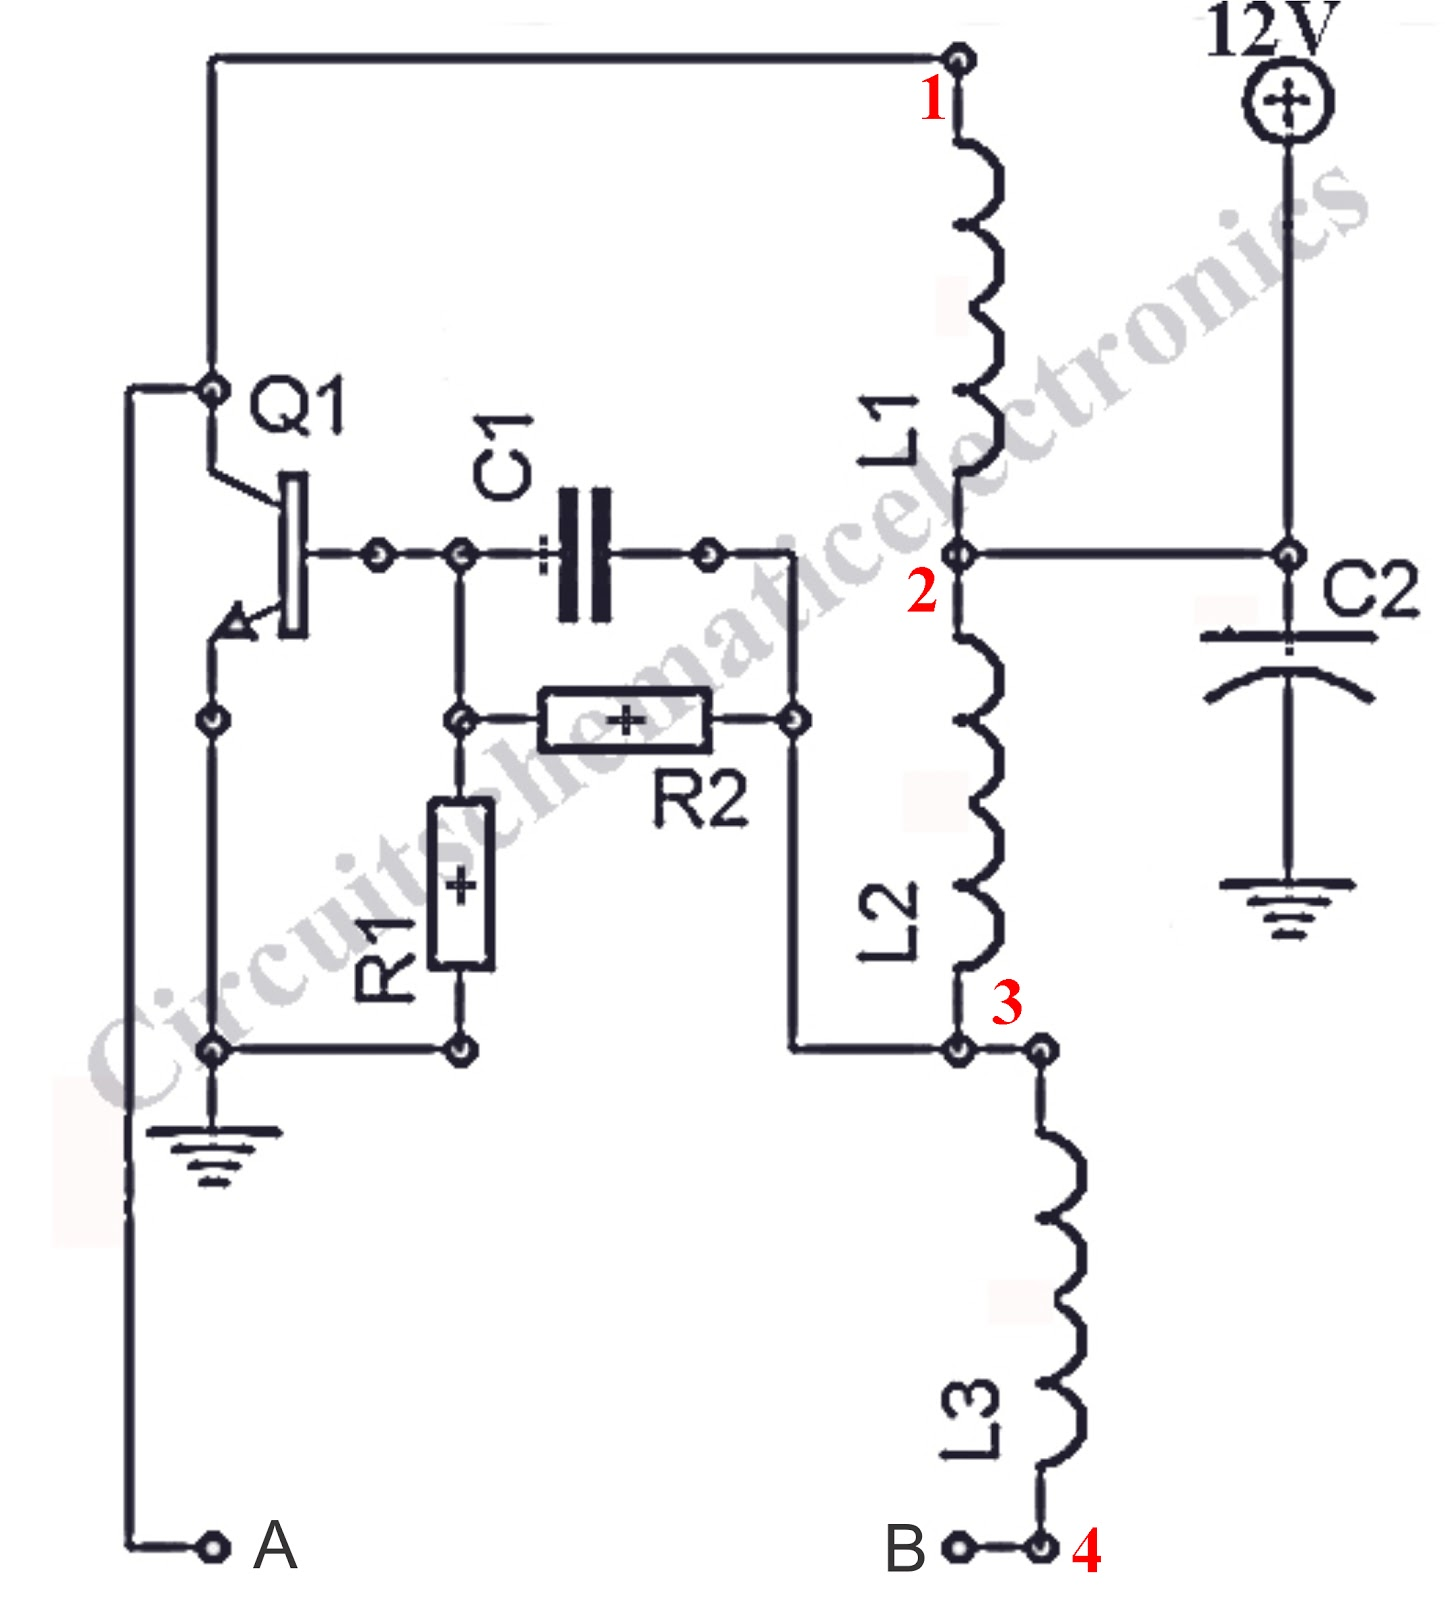 light bulb schematic bhozaislunamaiuk